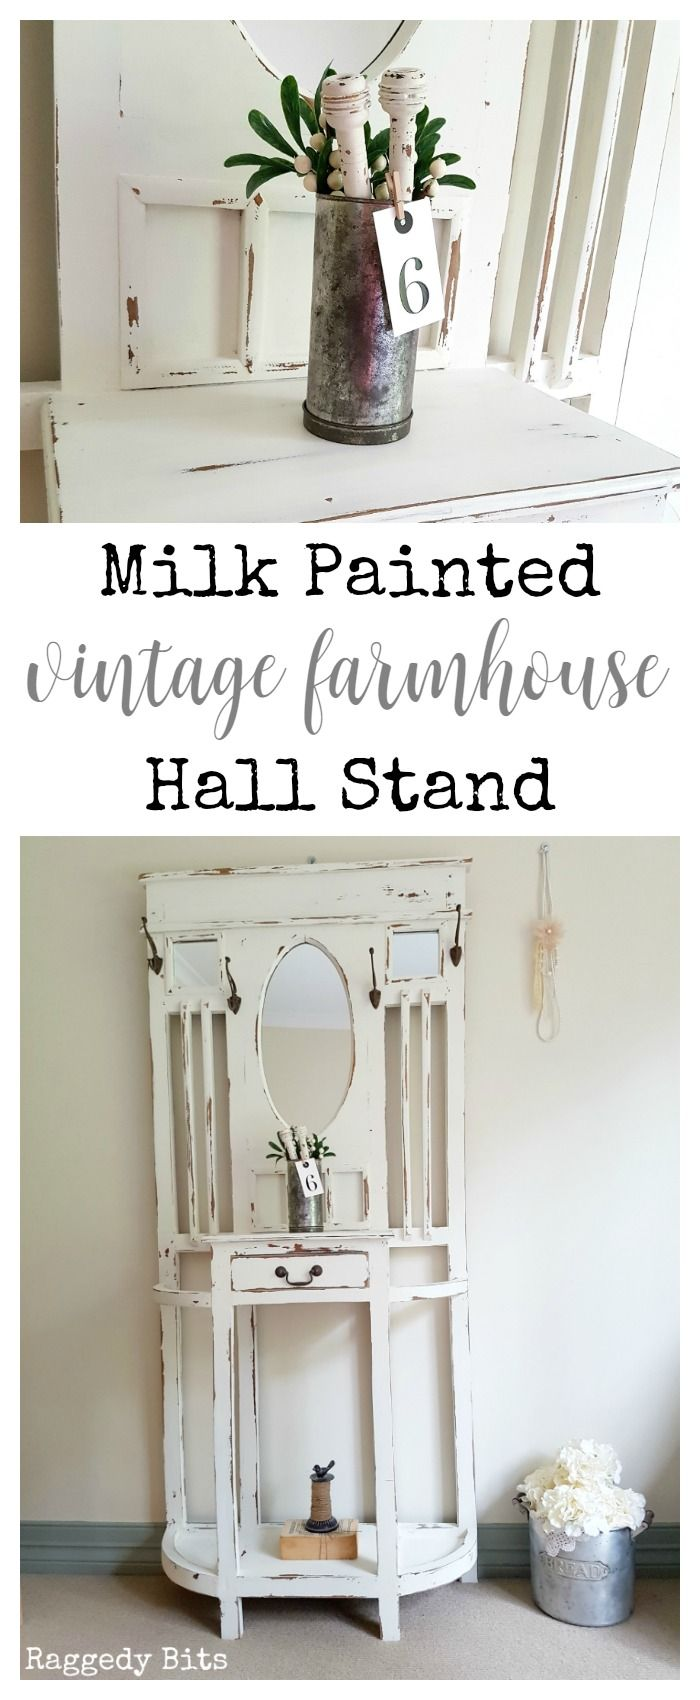 Milk painted vintage farmhouse hall stand hall stand vintage